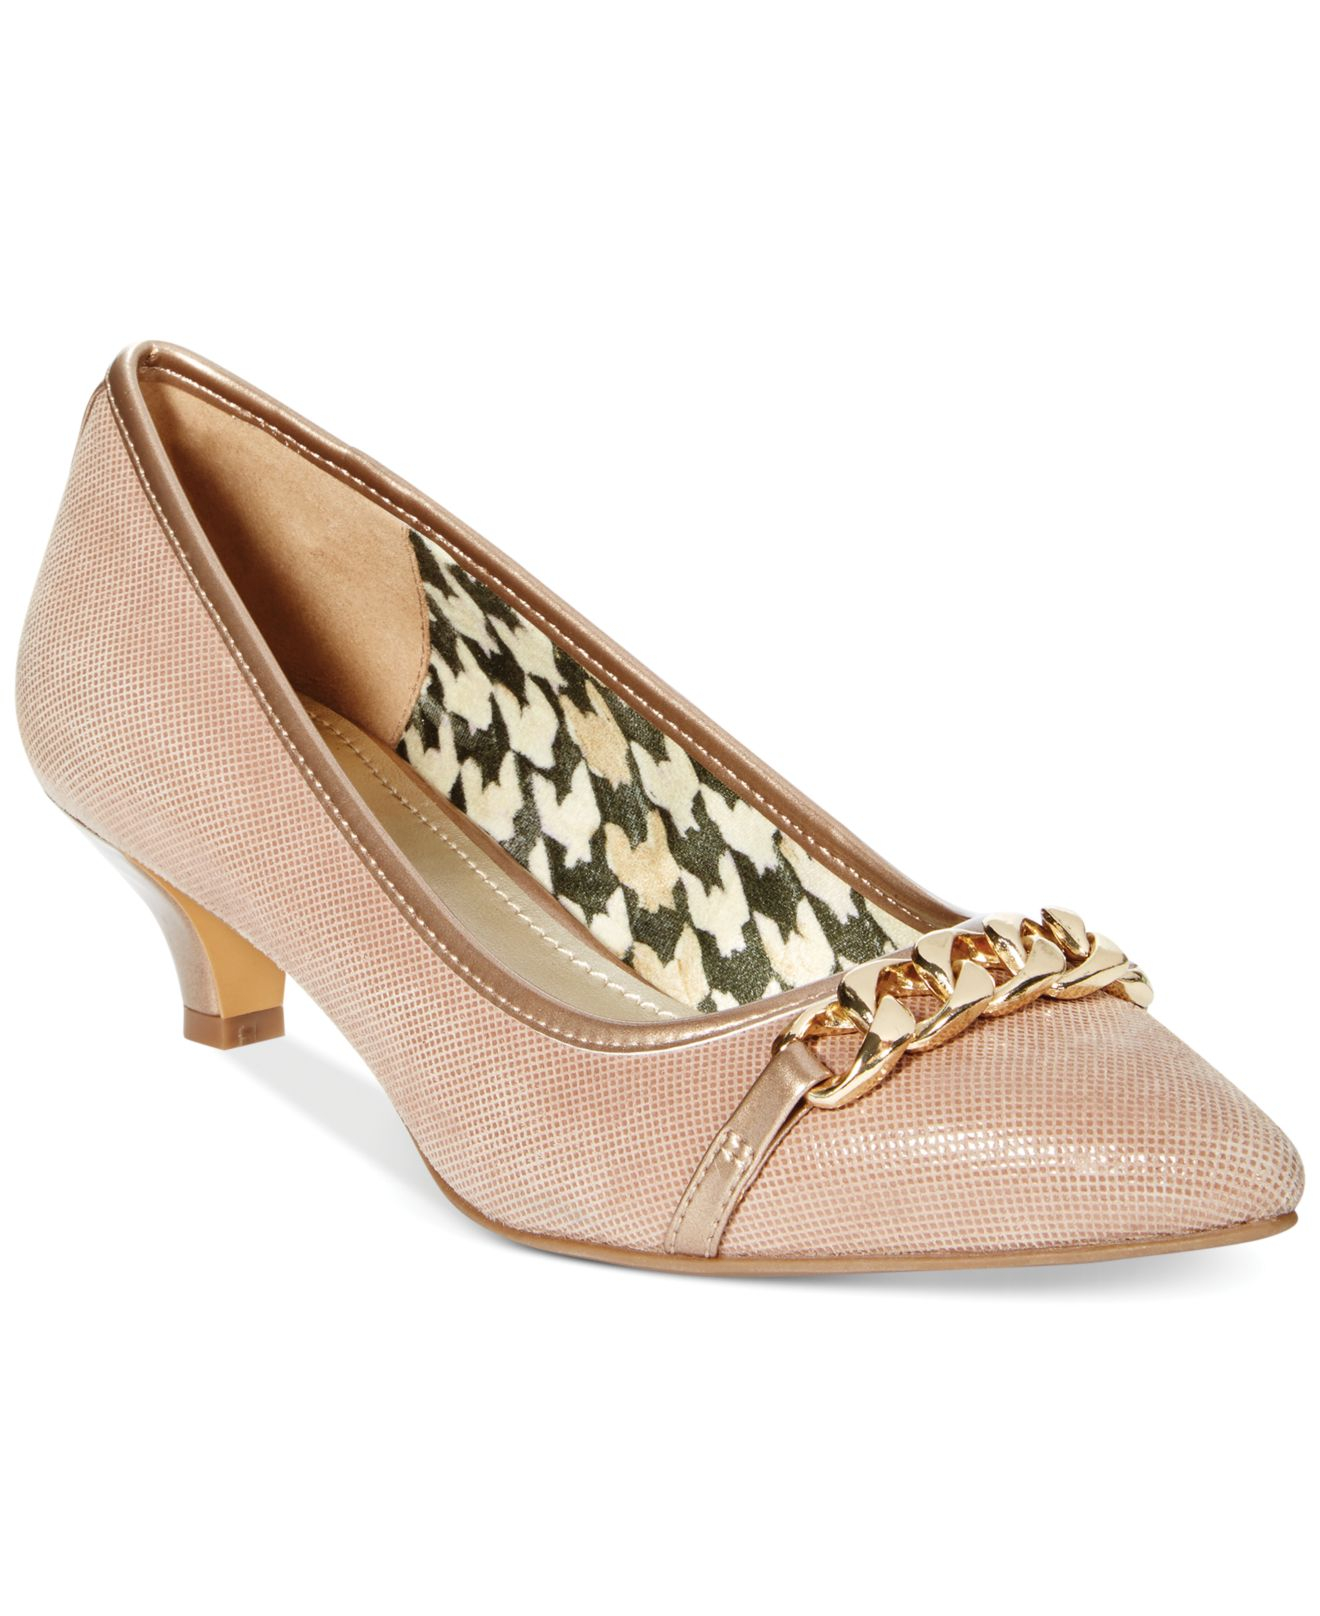 Anne klein Mikaela Kitten Heel Pumps- A Macy'S Exclusive in Brown ...